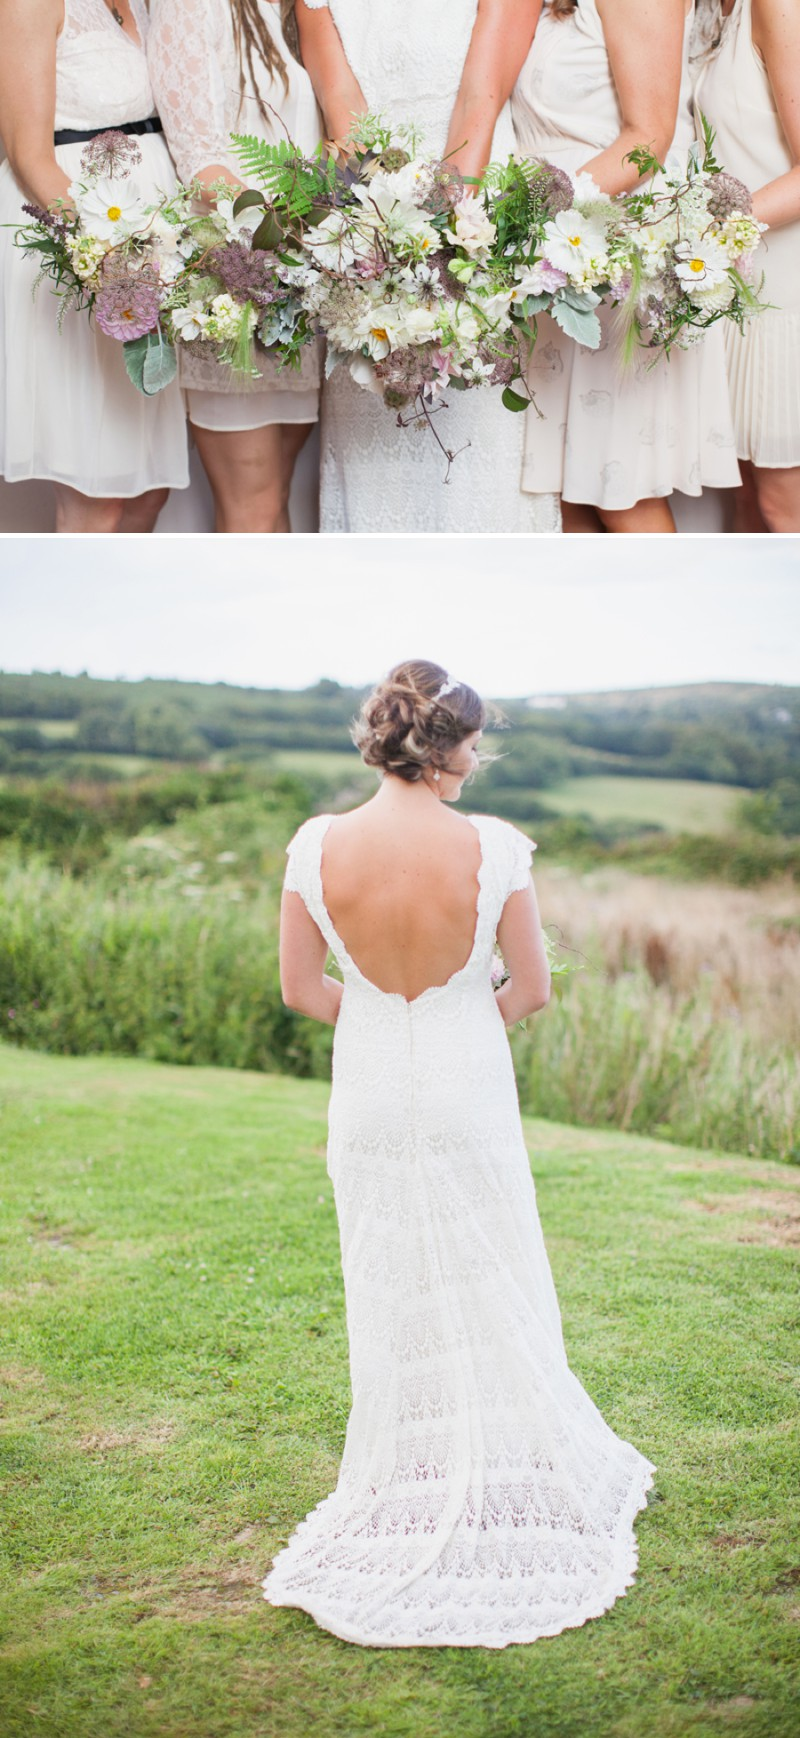 A Beautiful Rustic Peter Pan Themed Wedding With A Daughters Of Simone Wedding Dress At Trevenna Barns in Cornwall With Photography By Hayley Savage._0006